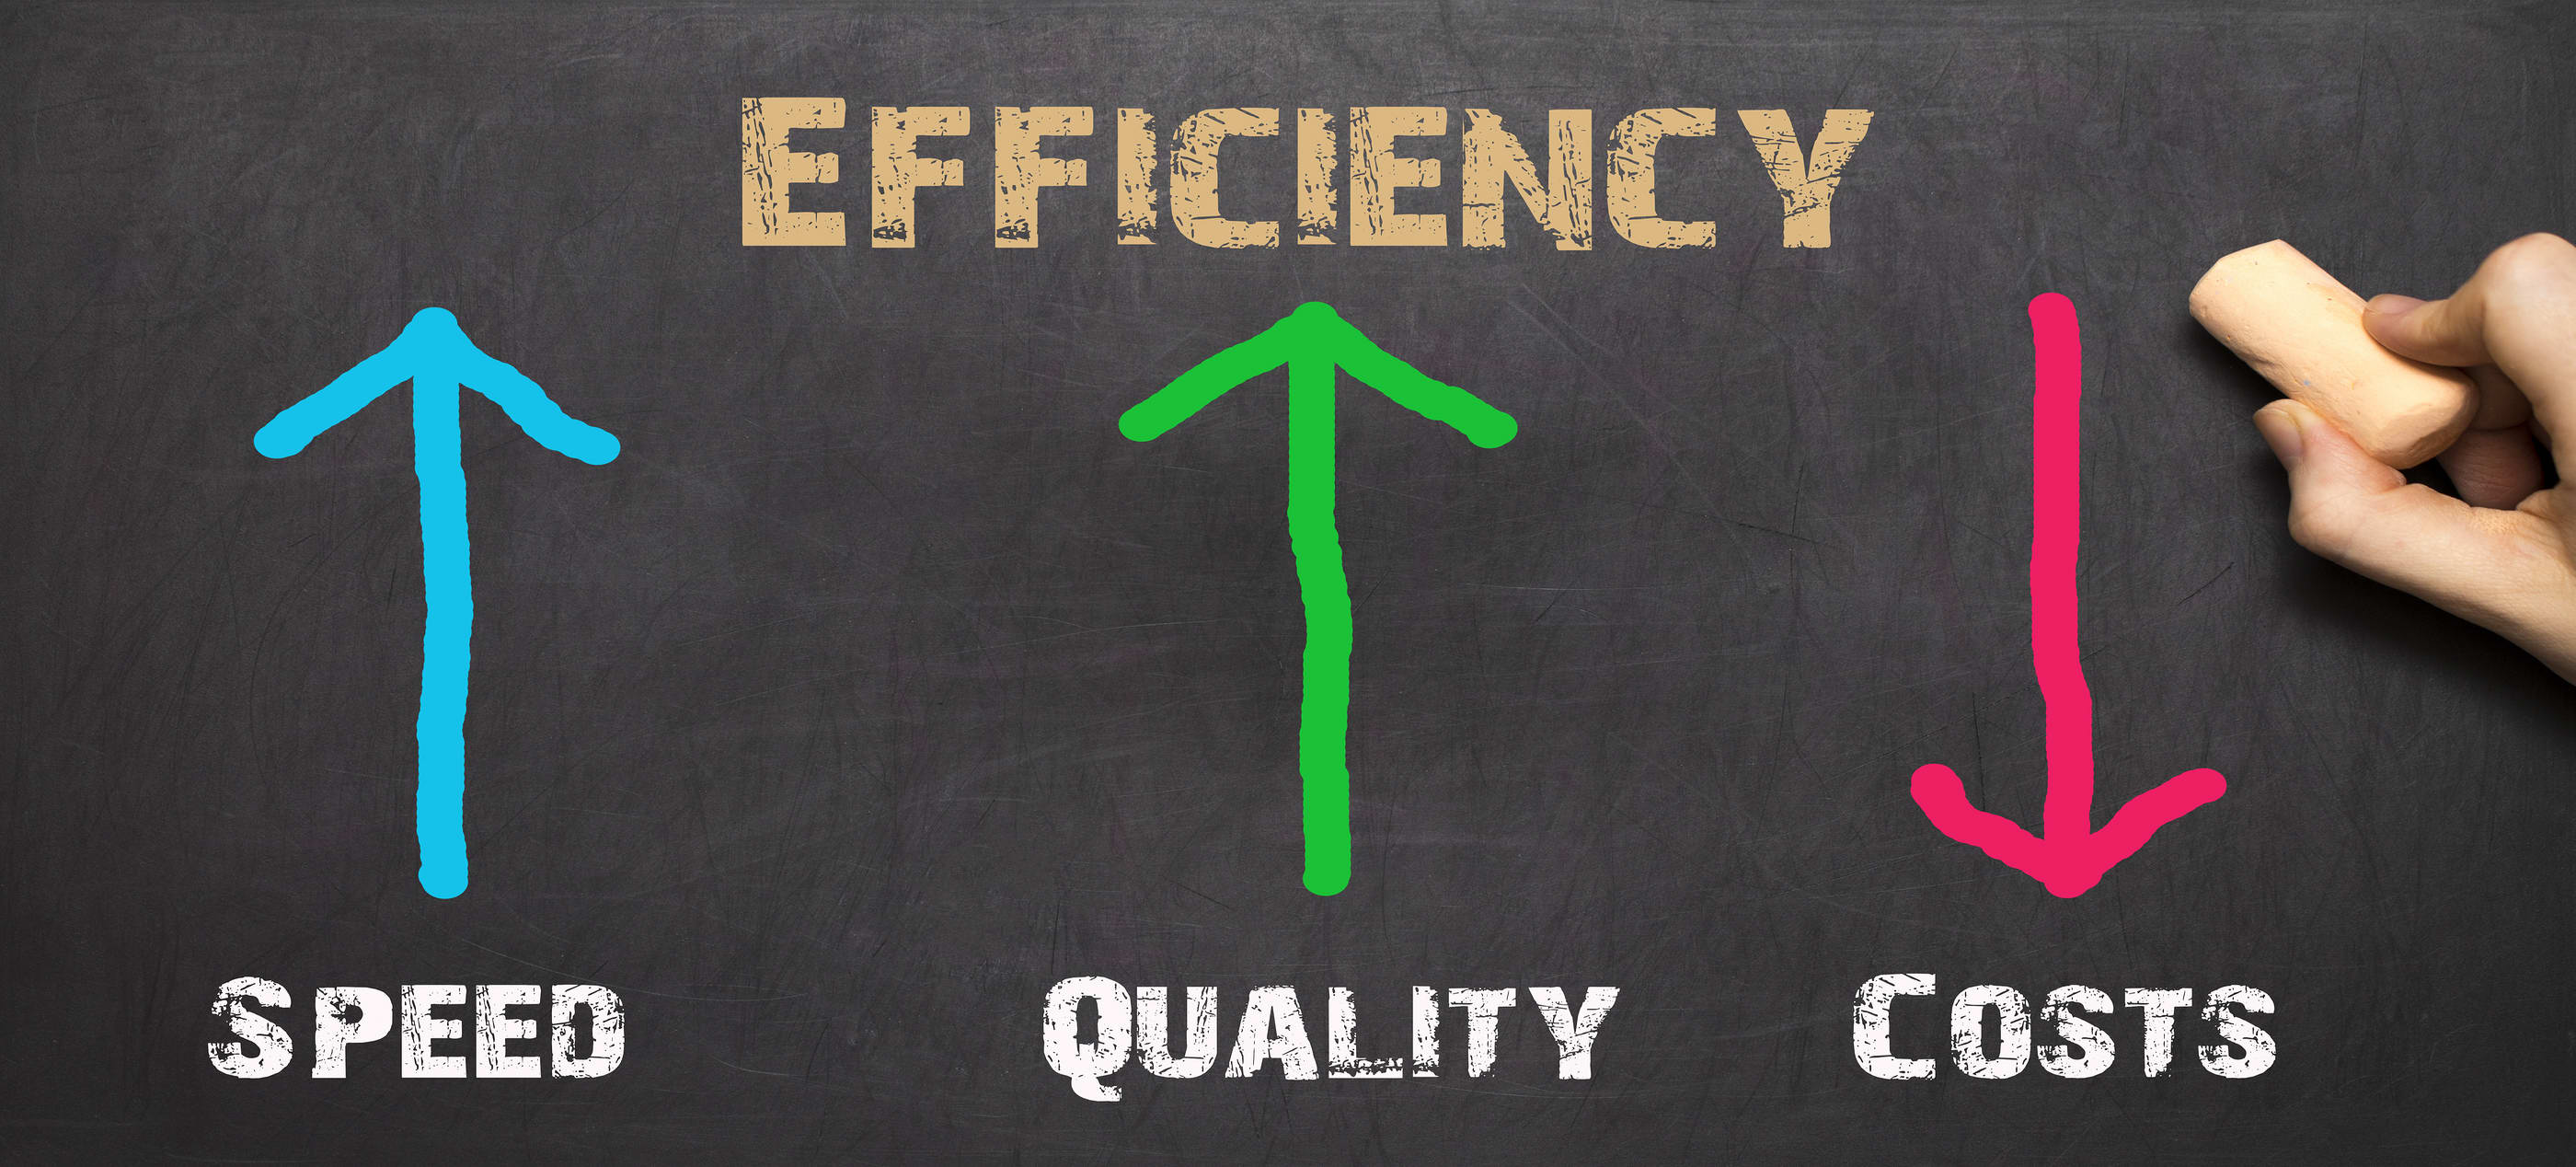 EFFICIENCY, SPEED, QUALITY, COST